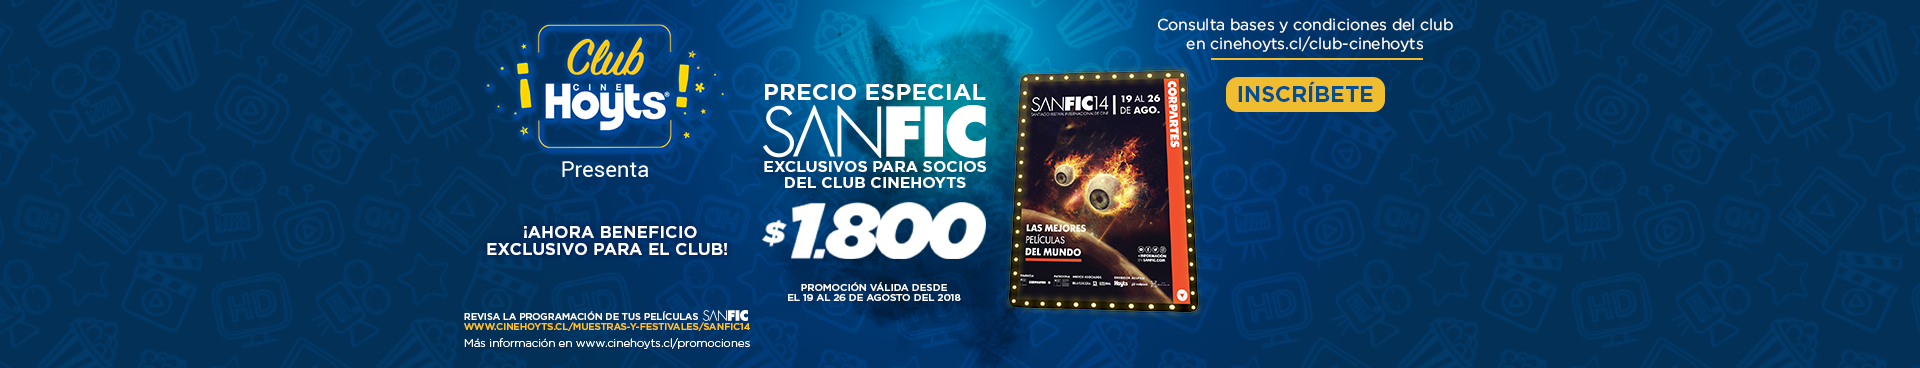 Club CineHoyts Sanfic